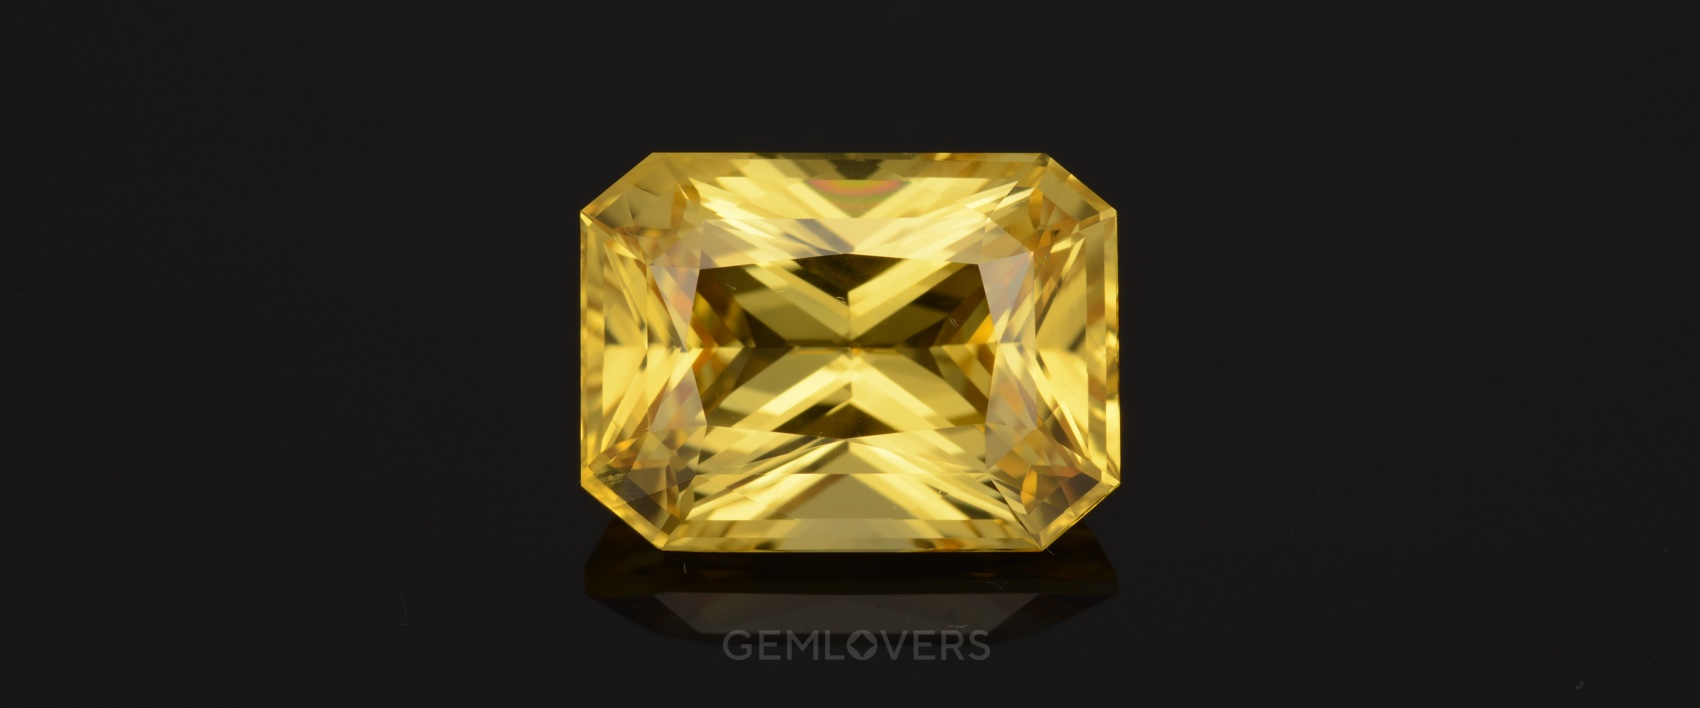 unique sample of the unheated yellow sapphire